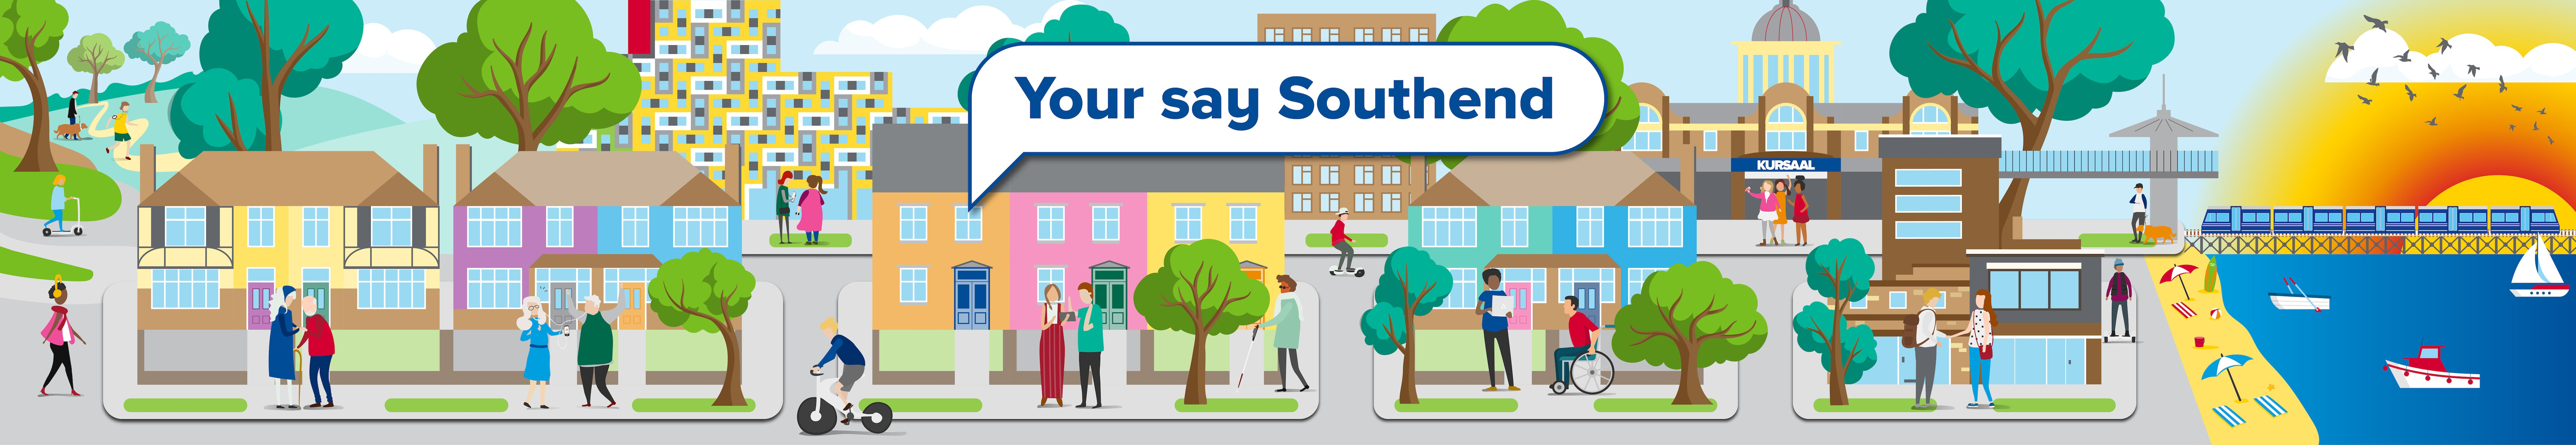 Your say Southend banner showing Southend's key landmarks